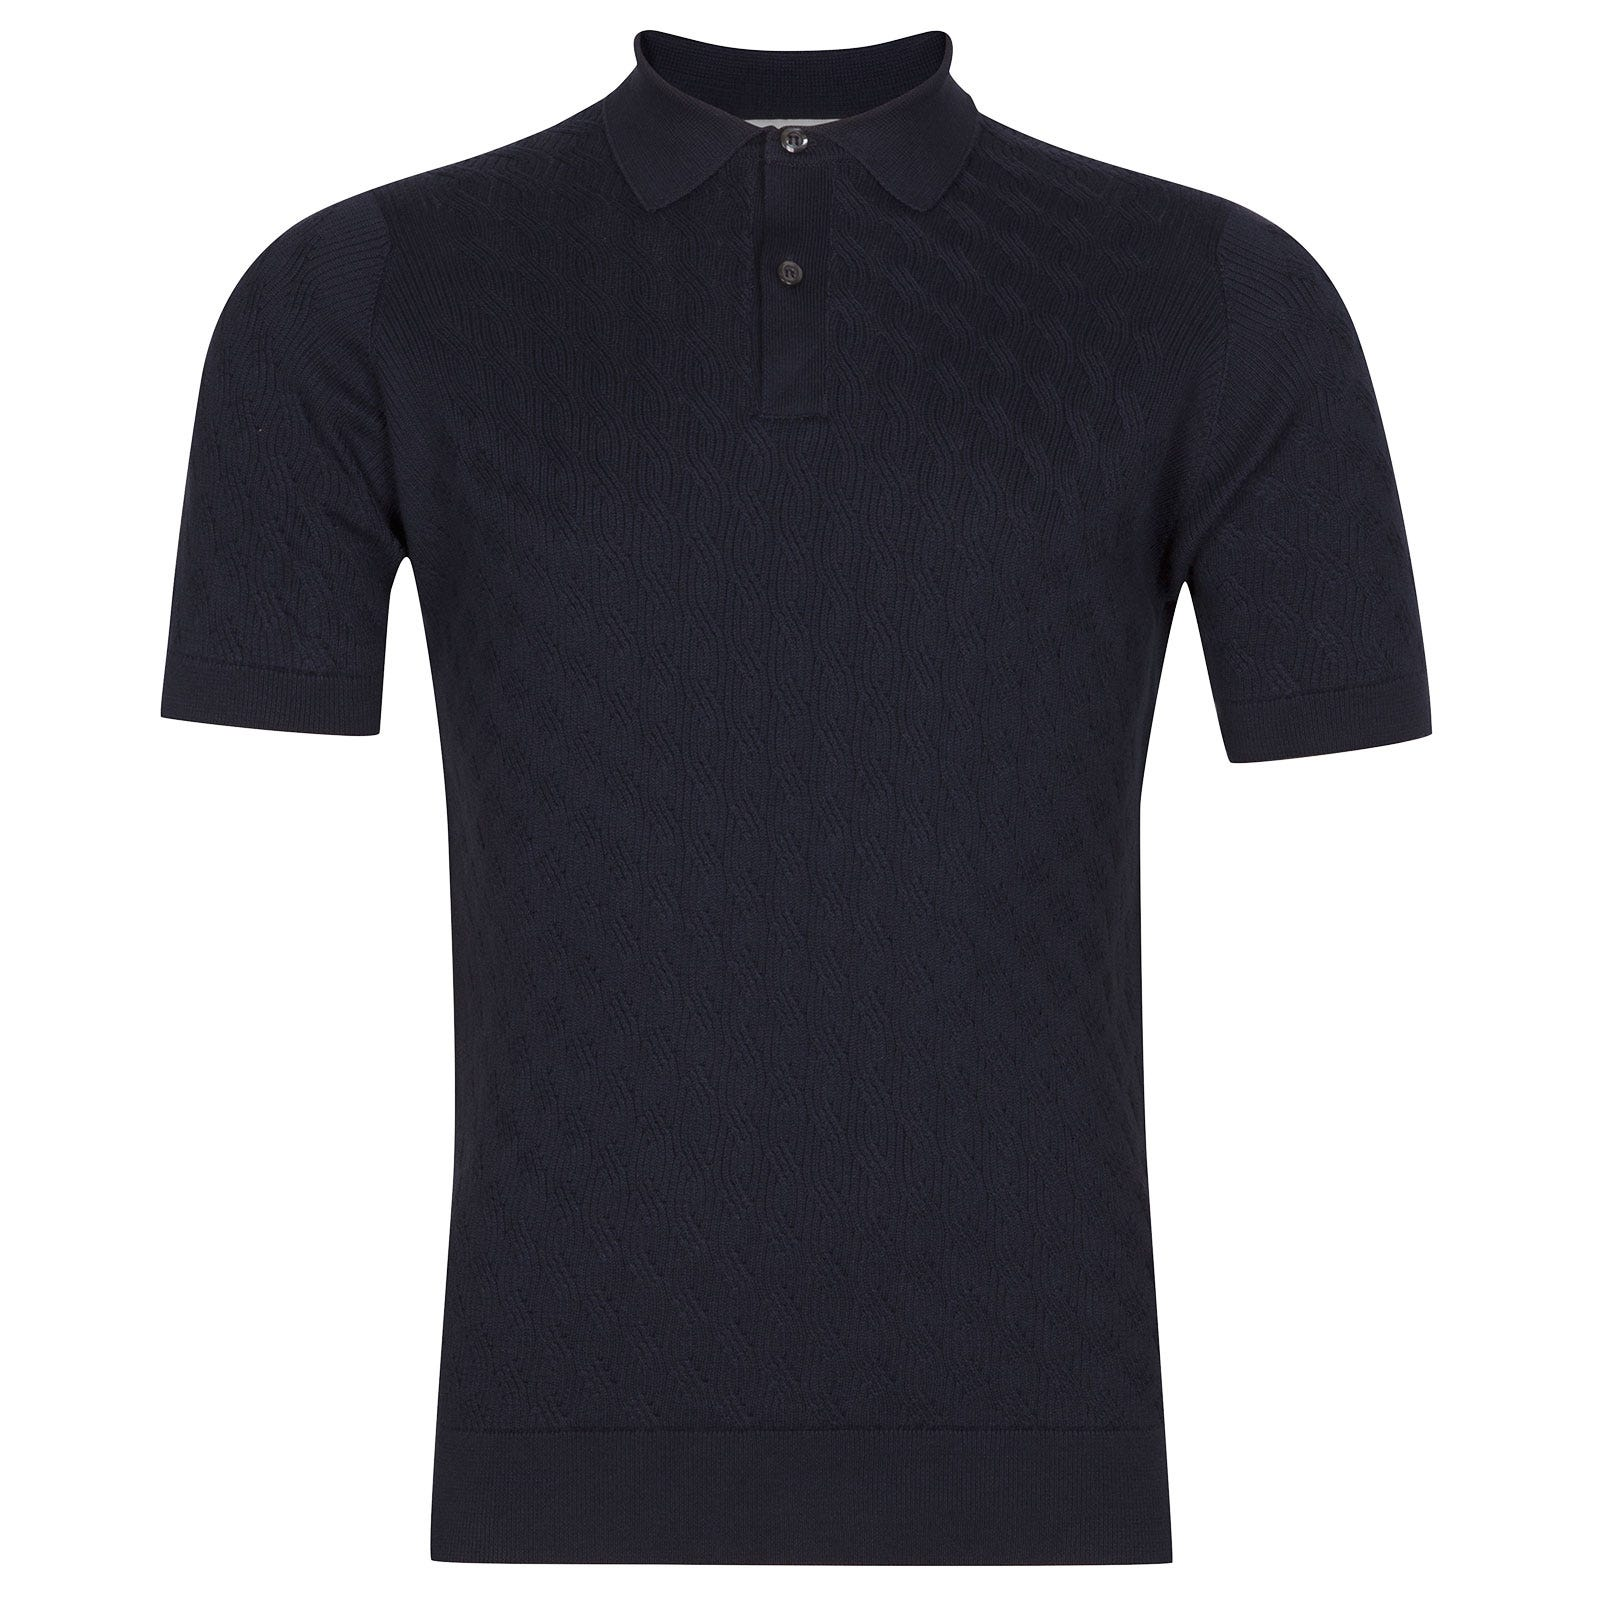 John Smedley Popplewell in Navy Shirt-XLG